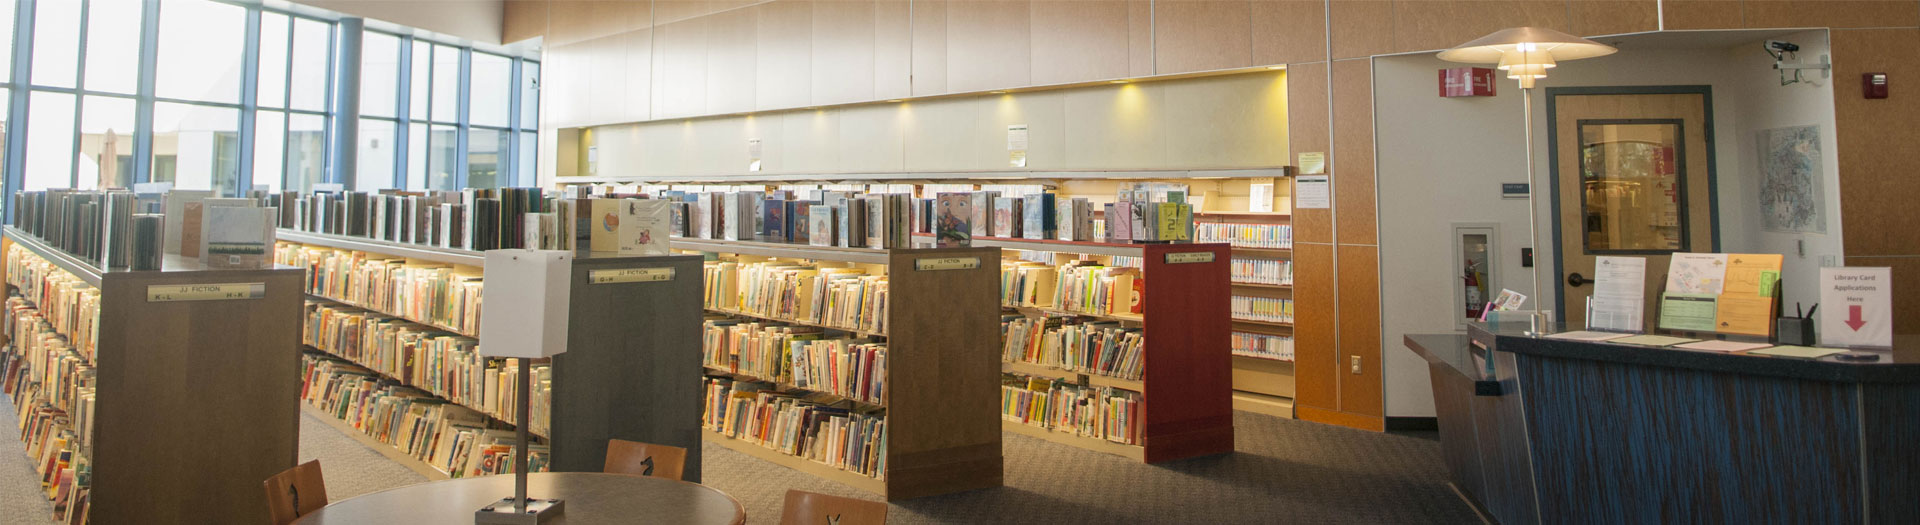 Picture of Library interior